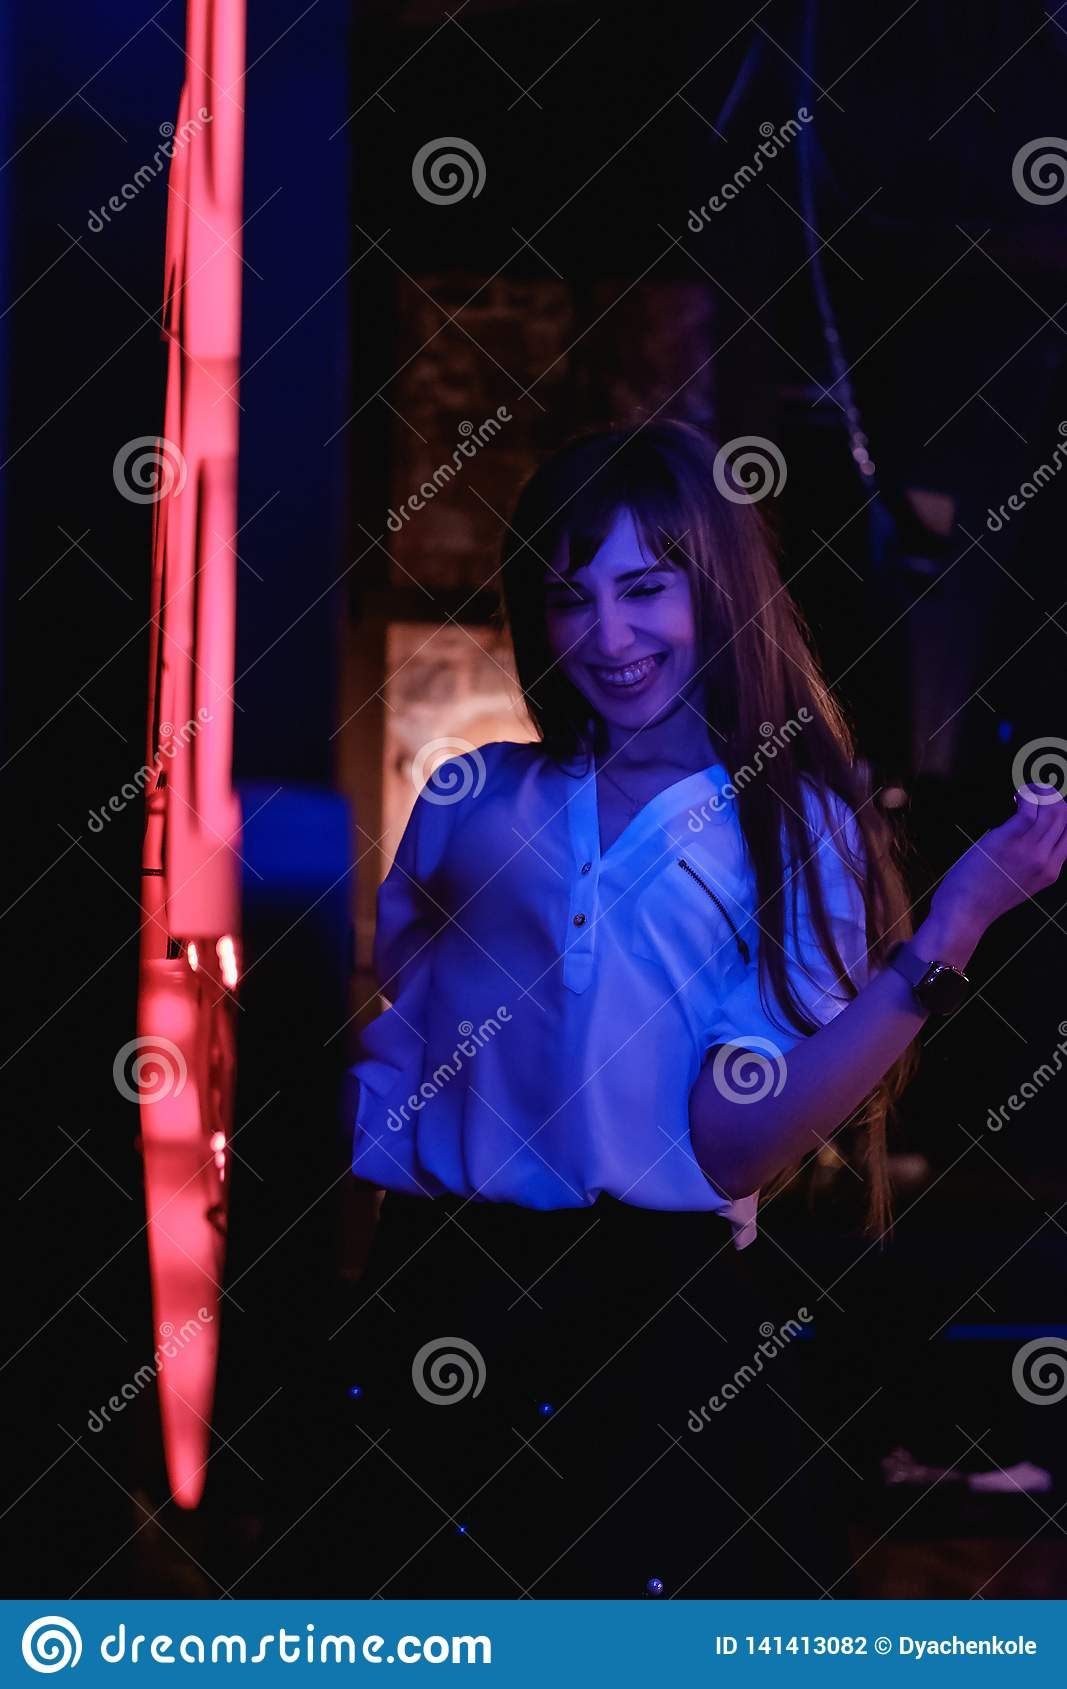 A girl with long hair in a white blouse is dancing and laughing in a club near a bright LED sign